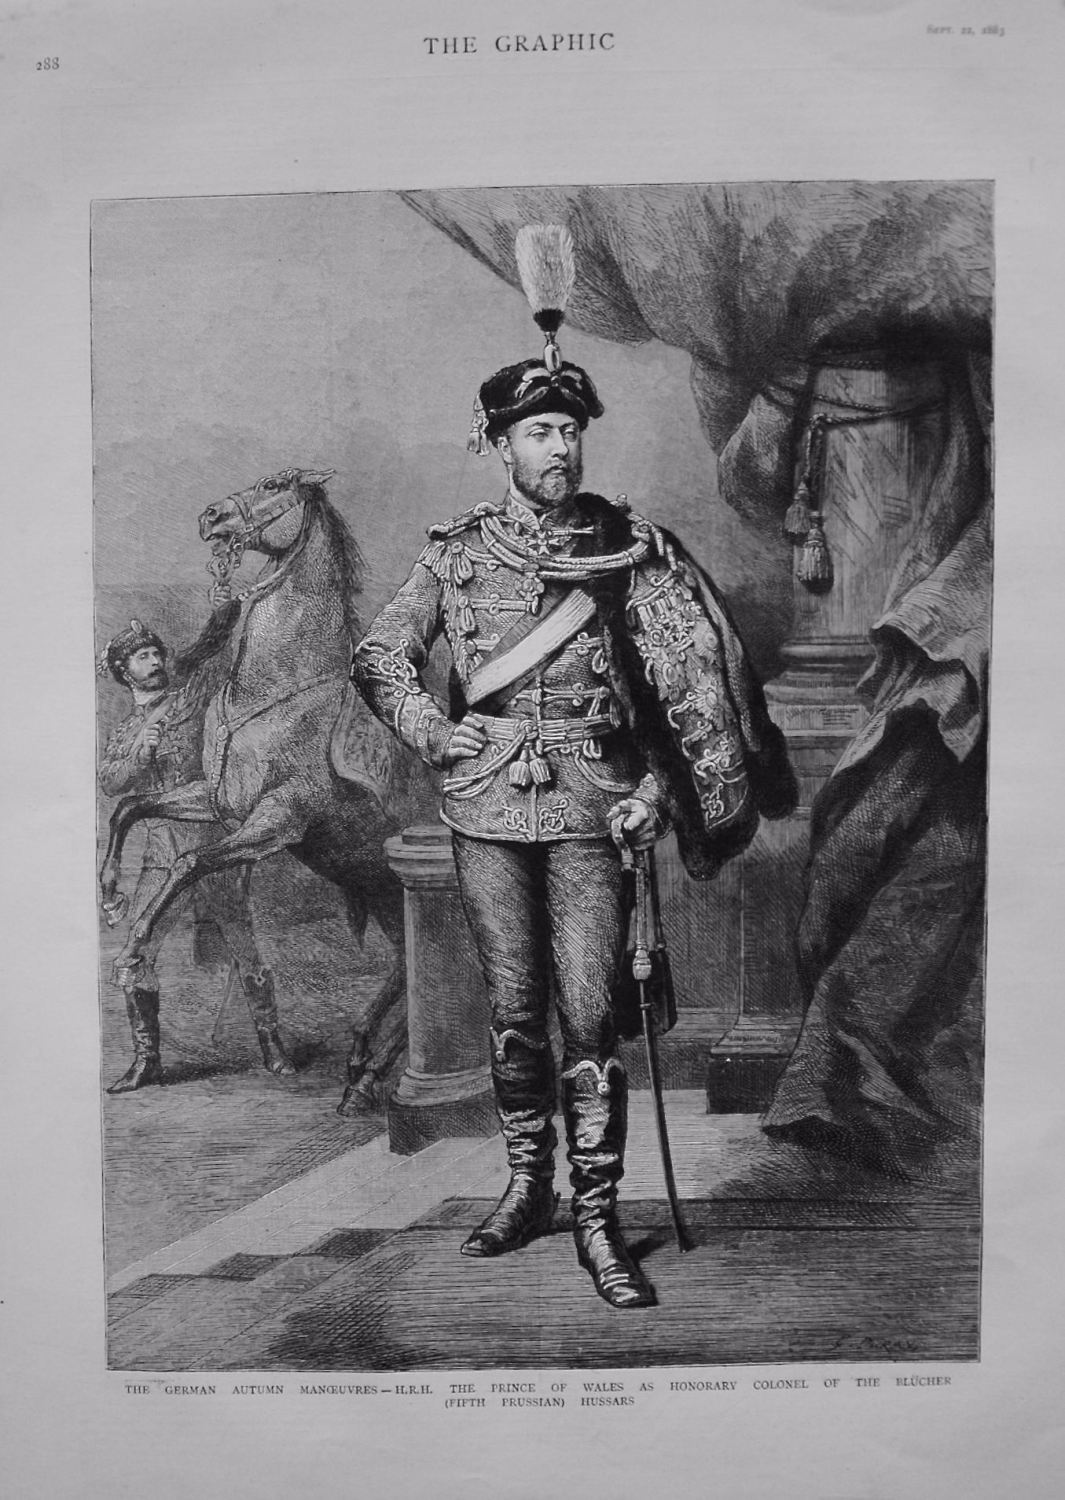 German Autumn Manoeuvres - H.R.H. The Prince of Wales as Honorary Colonel o